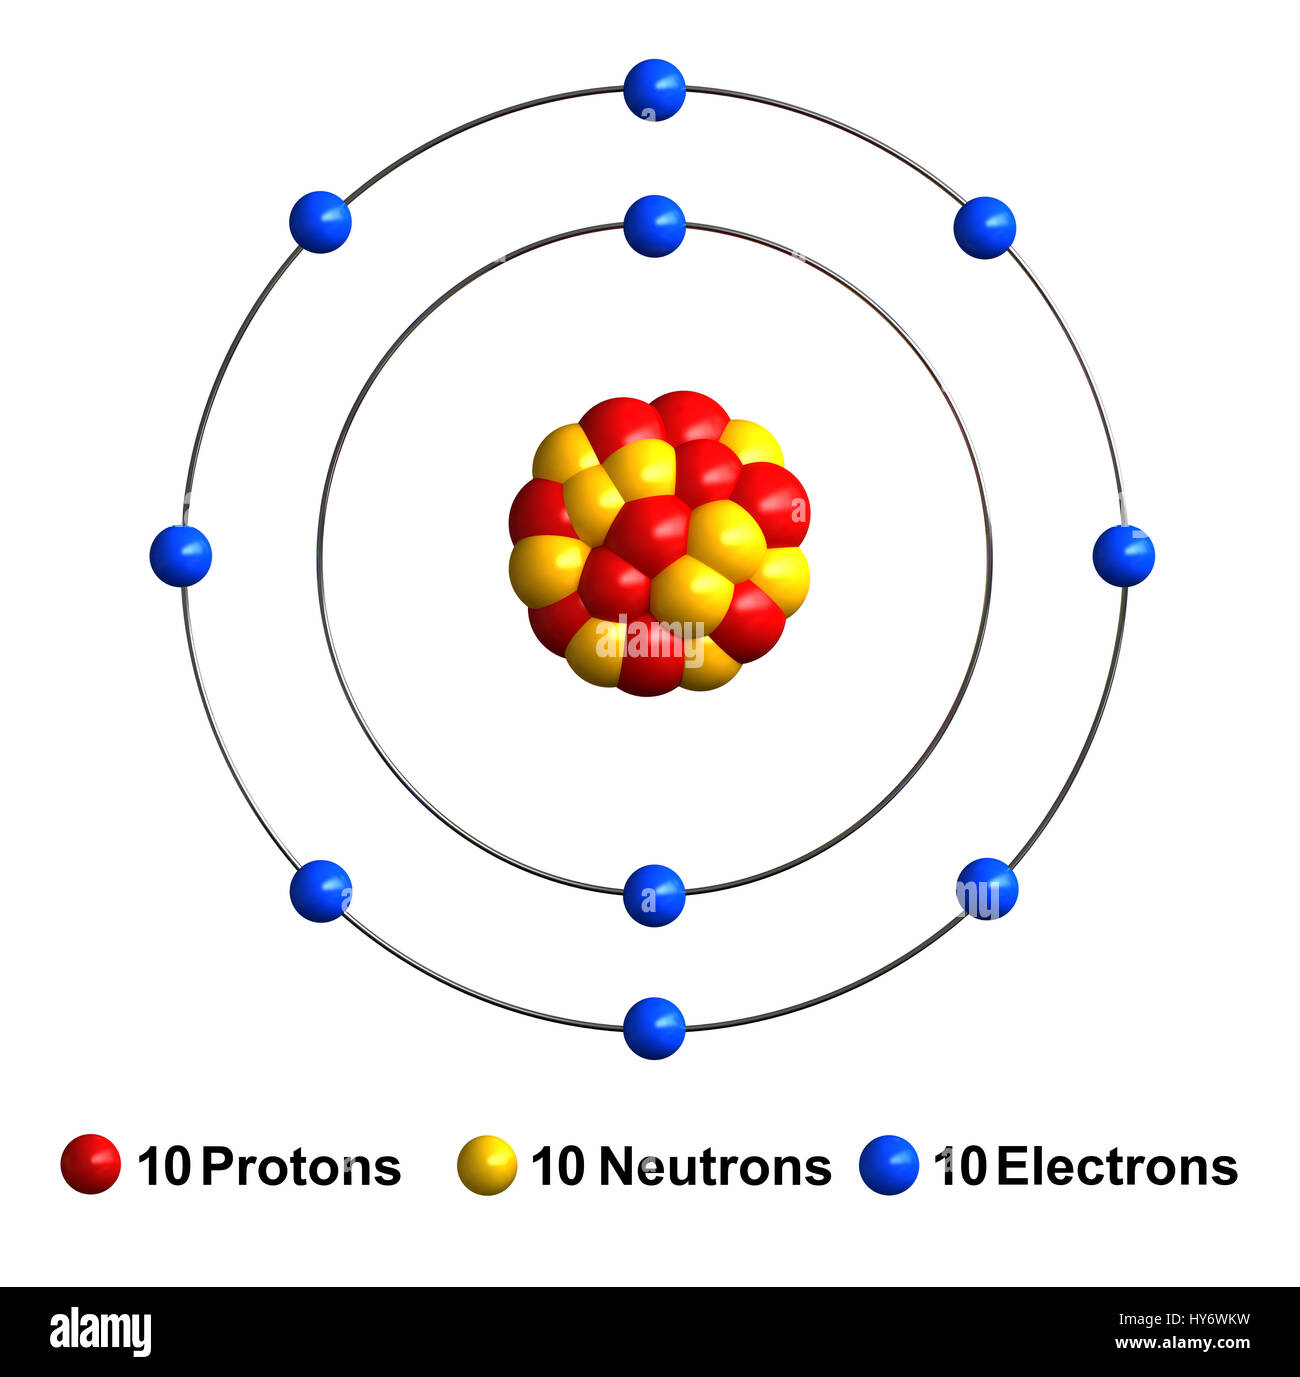 Neon Atomic Structure Stock Photos & Neon Atomic Structure ...Neon Diagram Of Atom